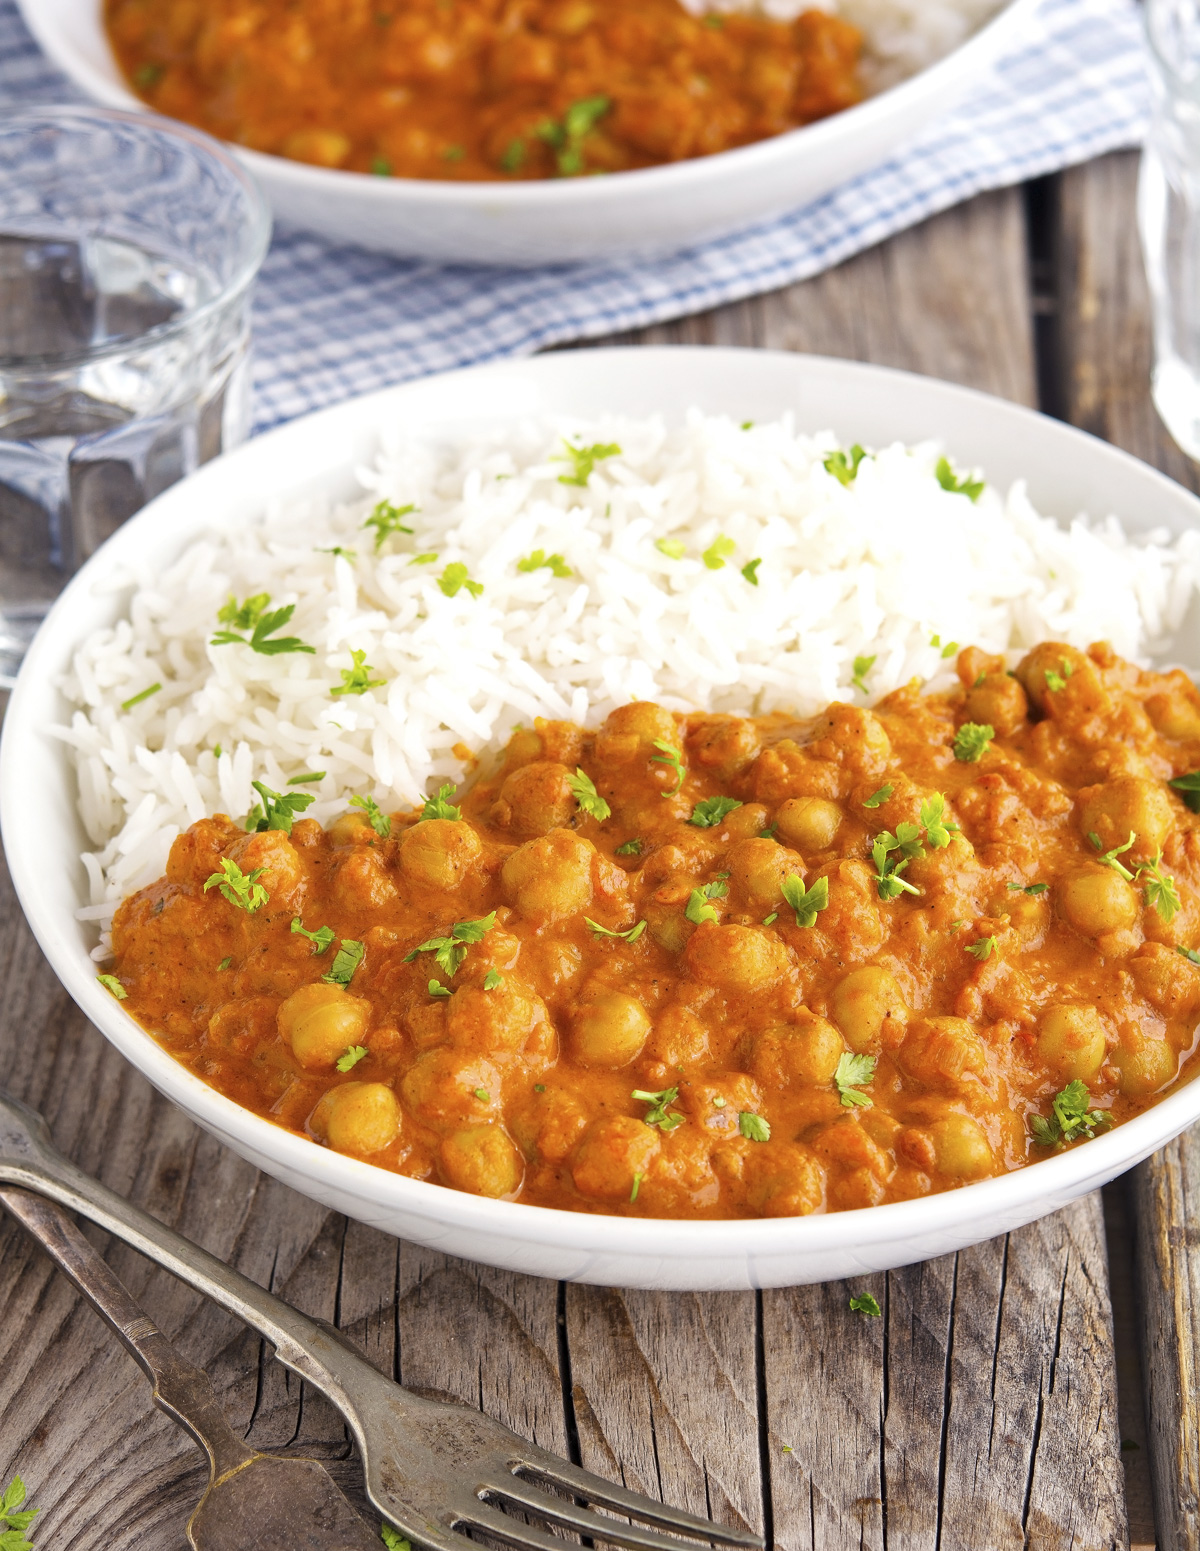 Vegan Chickpea Tikka Masala. Need more recipes? Find 25 Super Healthy Vegan Dinner Recipes for Weeknights. easy dinner vegan | vegan christmas dinner recipes | vegan recipes dinner easy #vegan #vegandinner #veganfriendly #veganfit